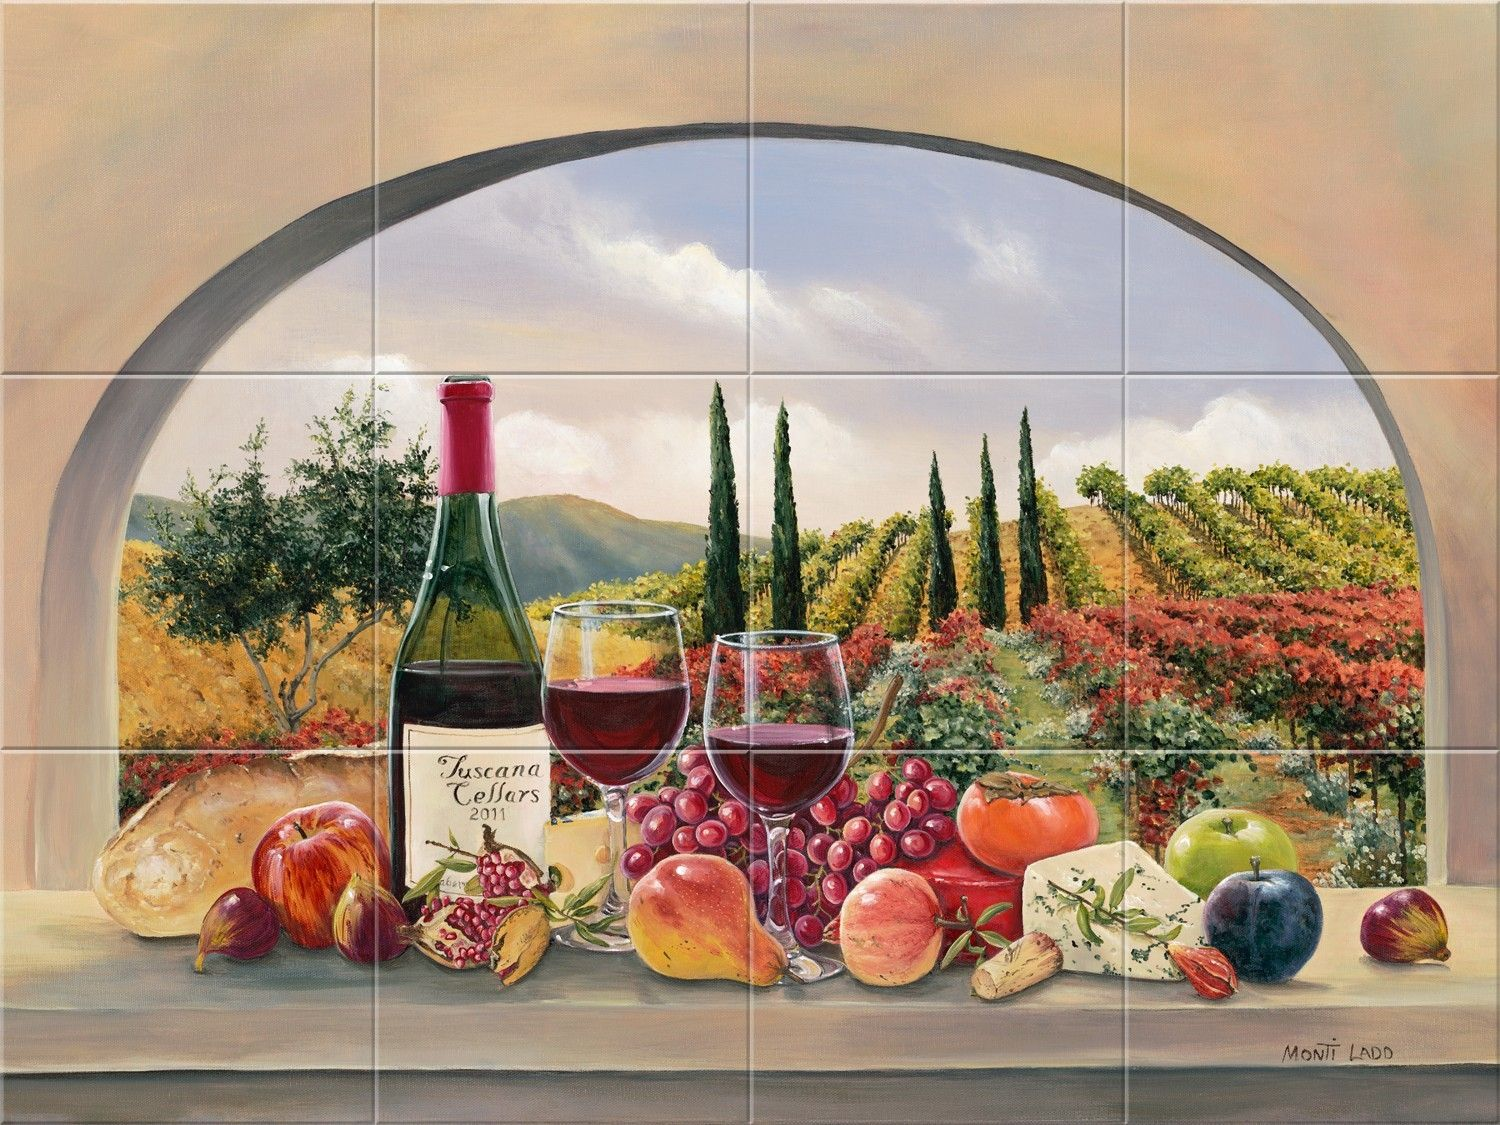 Hand Made Late Harvest Tile Mural By Murals By Monti